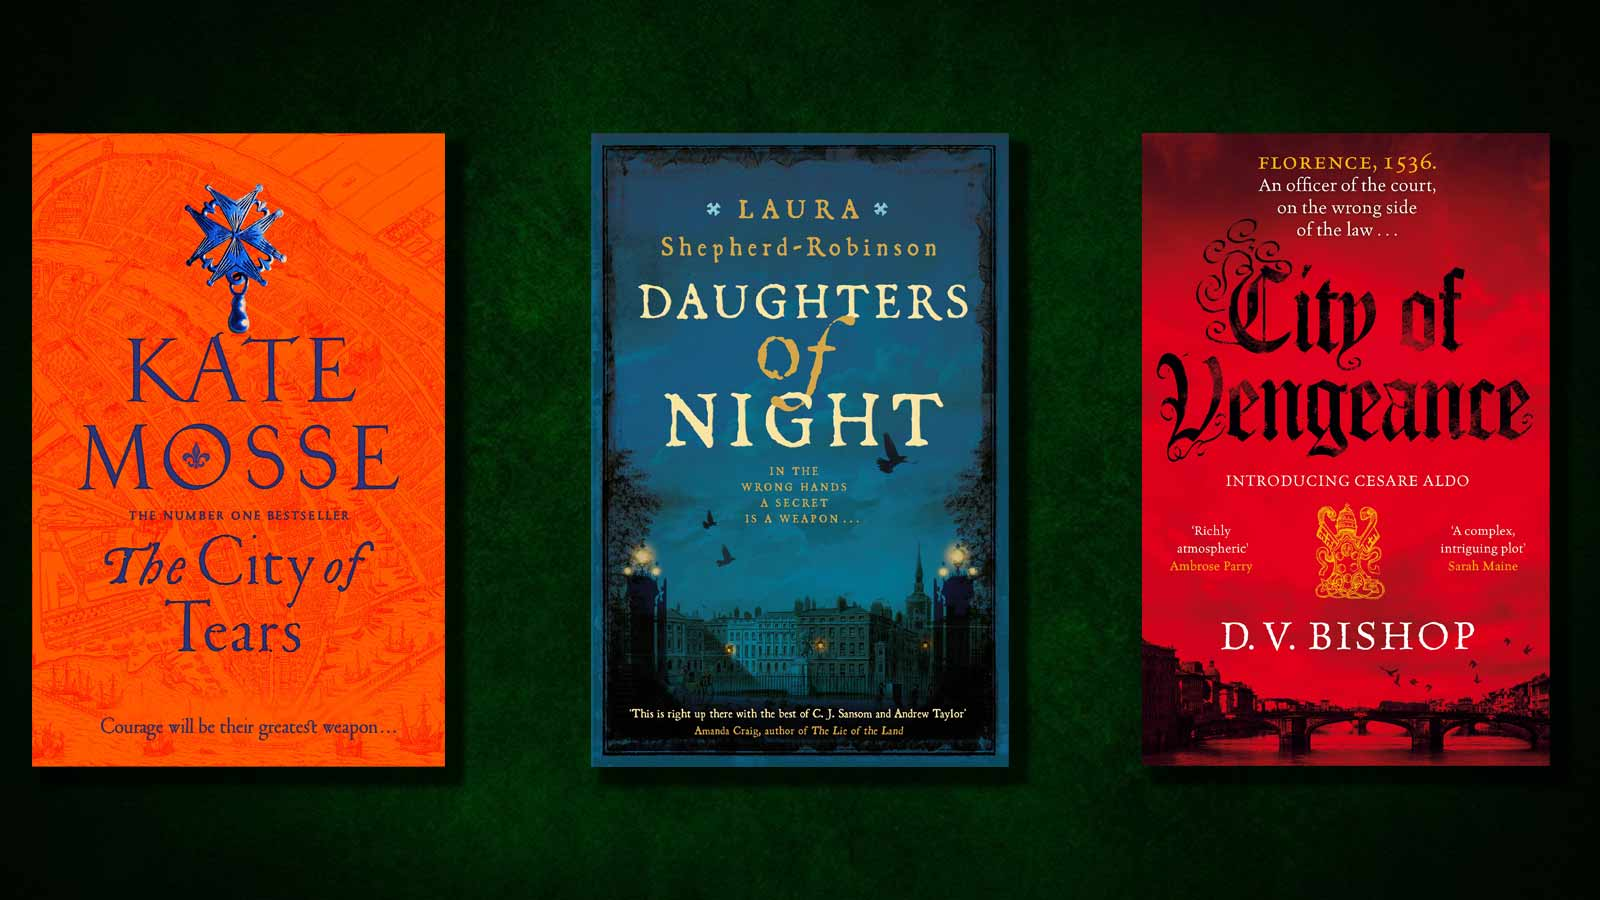 The City of Tear, Daughters of Night and City of Vengeance book covers